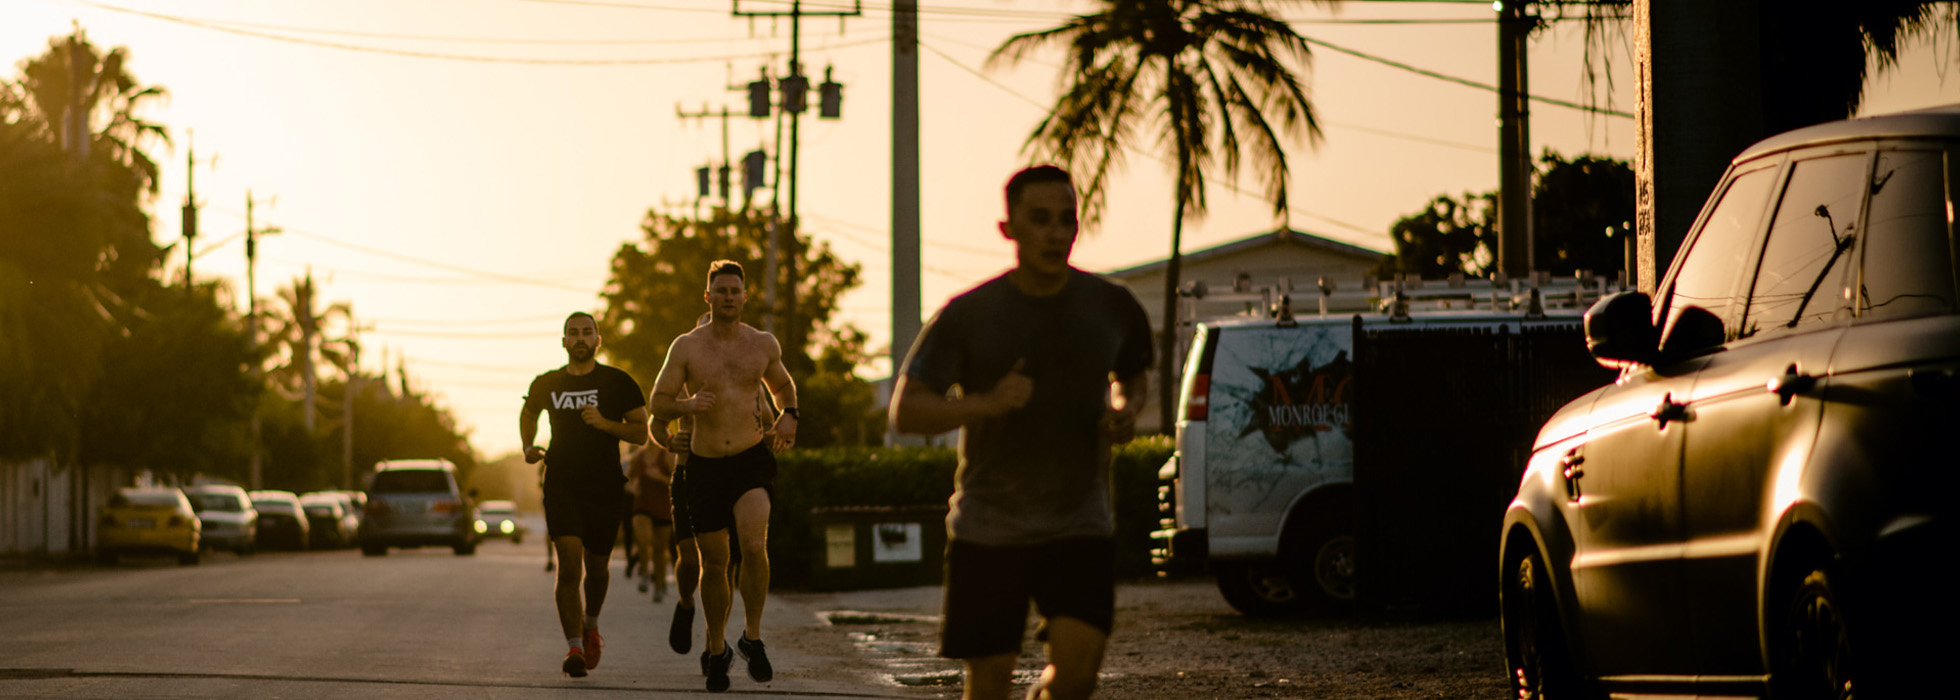 CrossFit Training near Key West FL